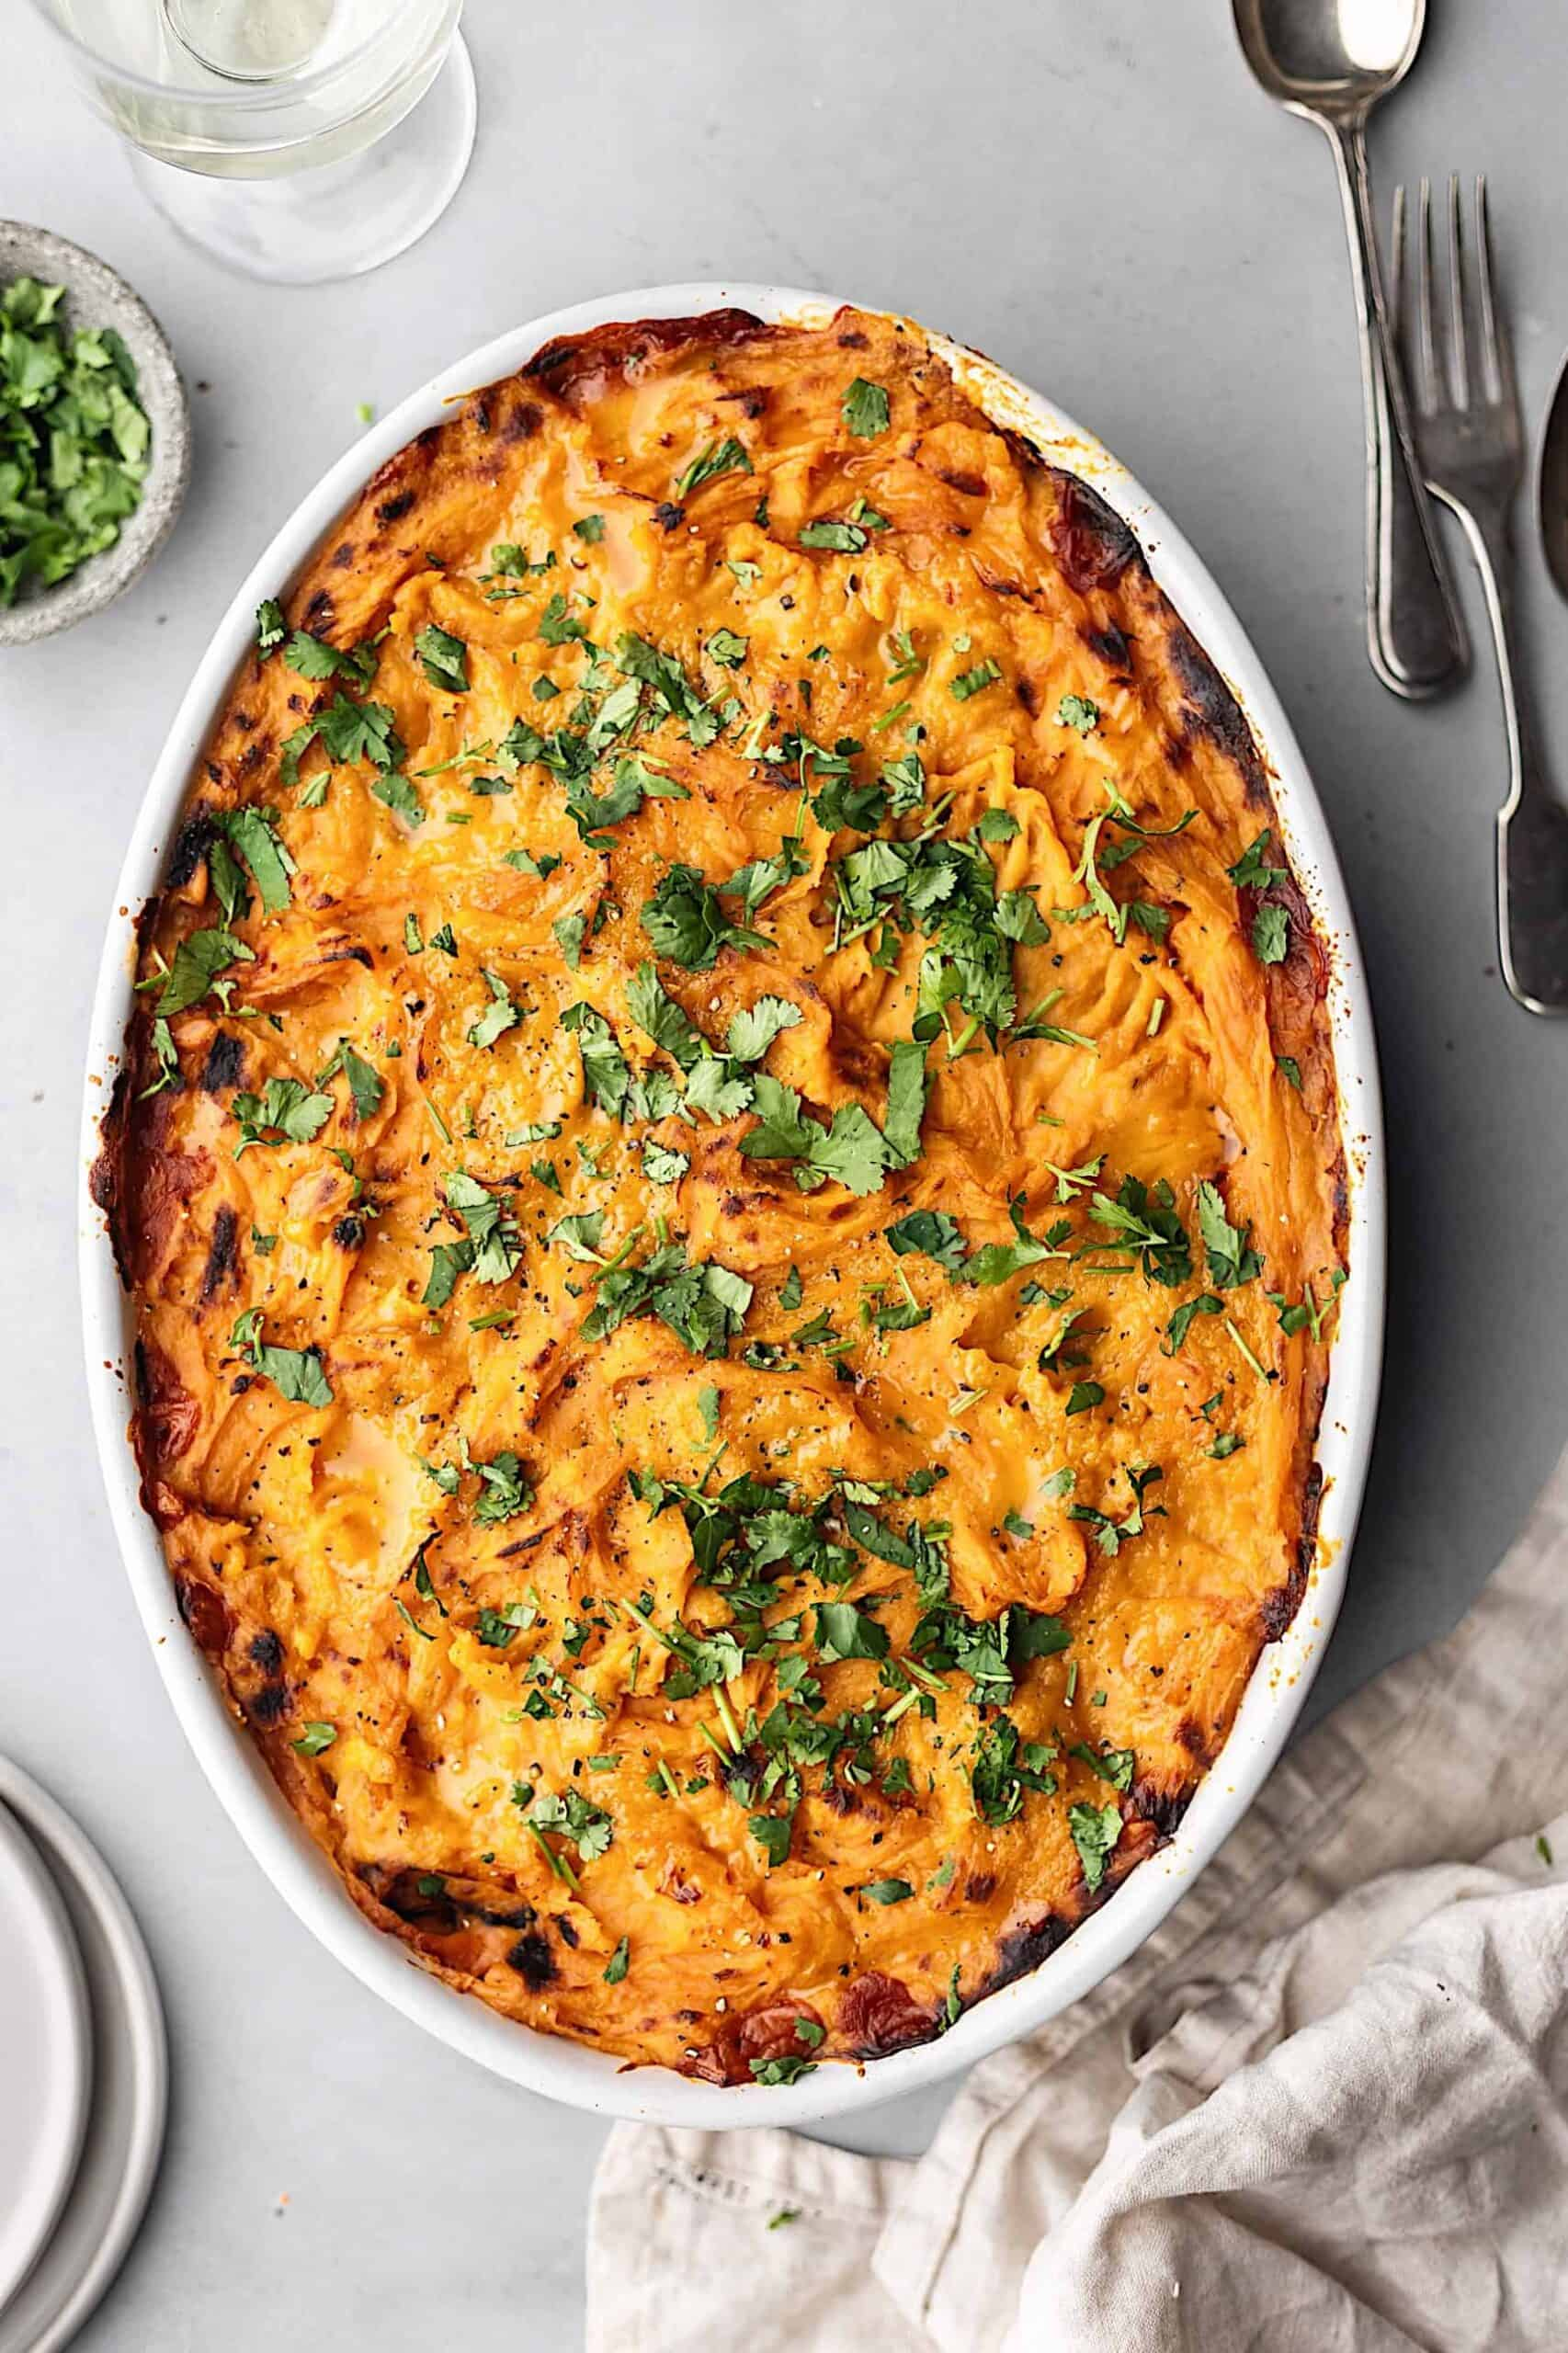 Lentil Shepherds Pie with Sweet Potato Mash #vegan #recipe #shepherdspie